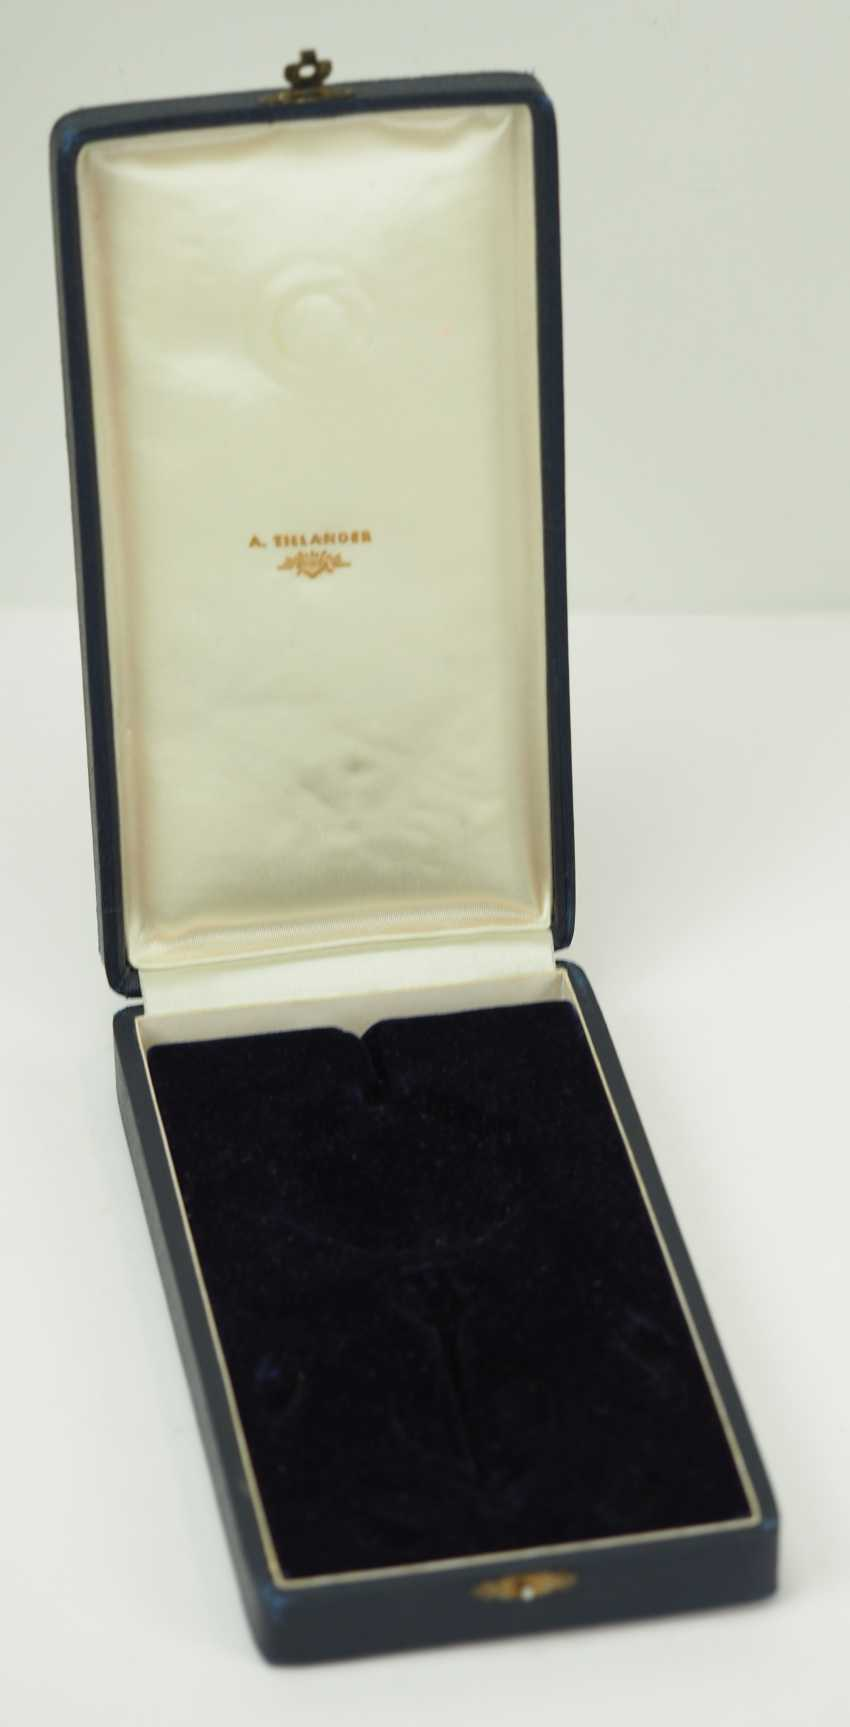 Finland: order of the White Rose, 2. Model (from 1936), Grand officer set case. - photo 2